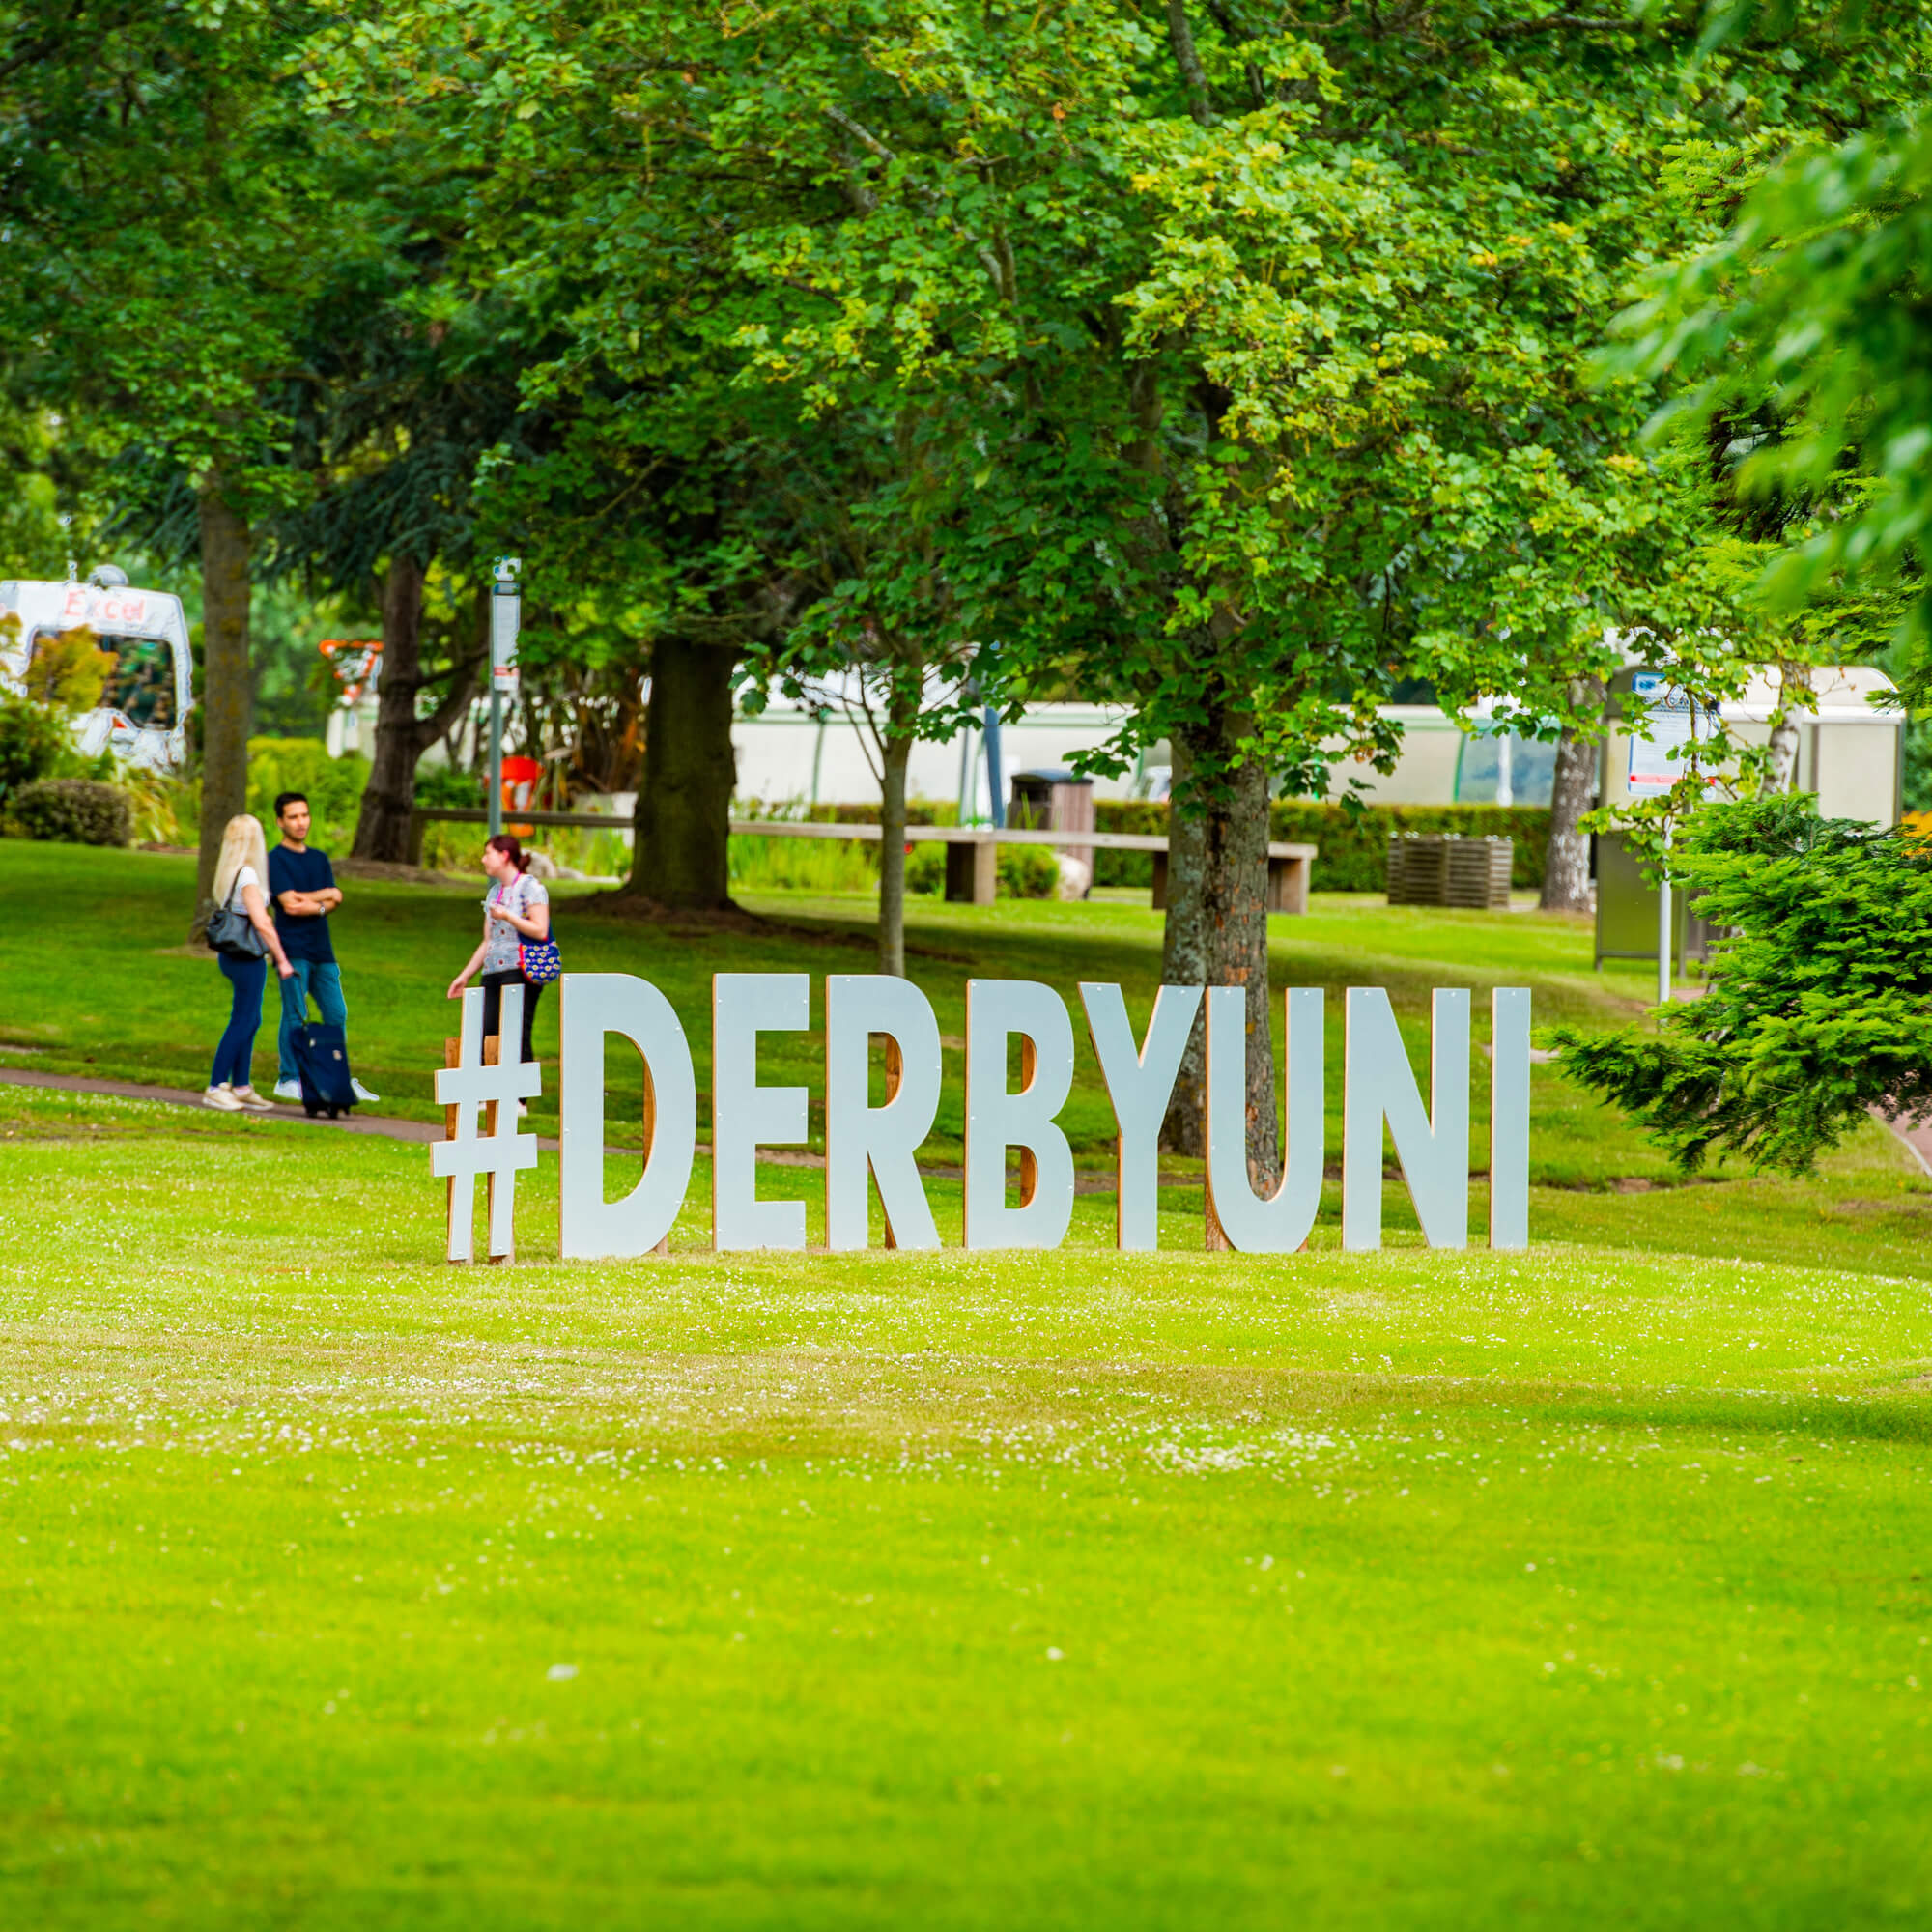 The #derbyuni sign on the grass in front of the University.